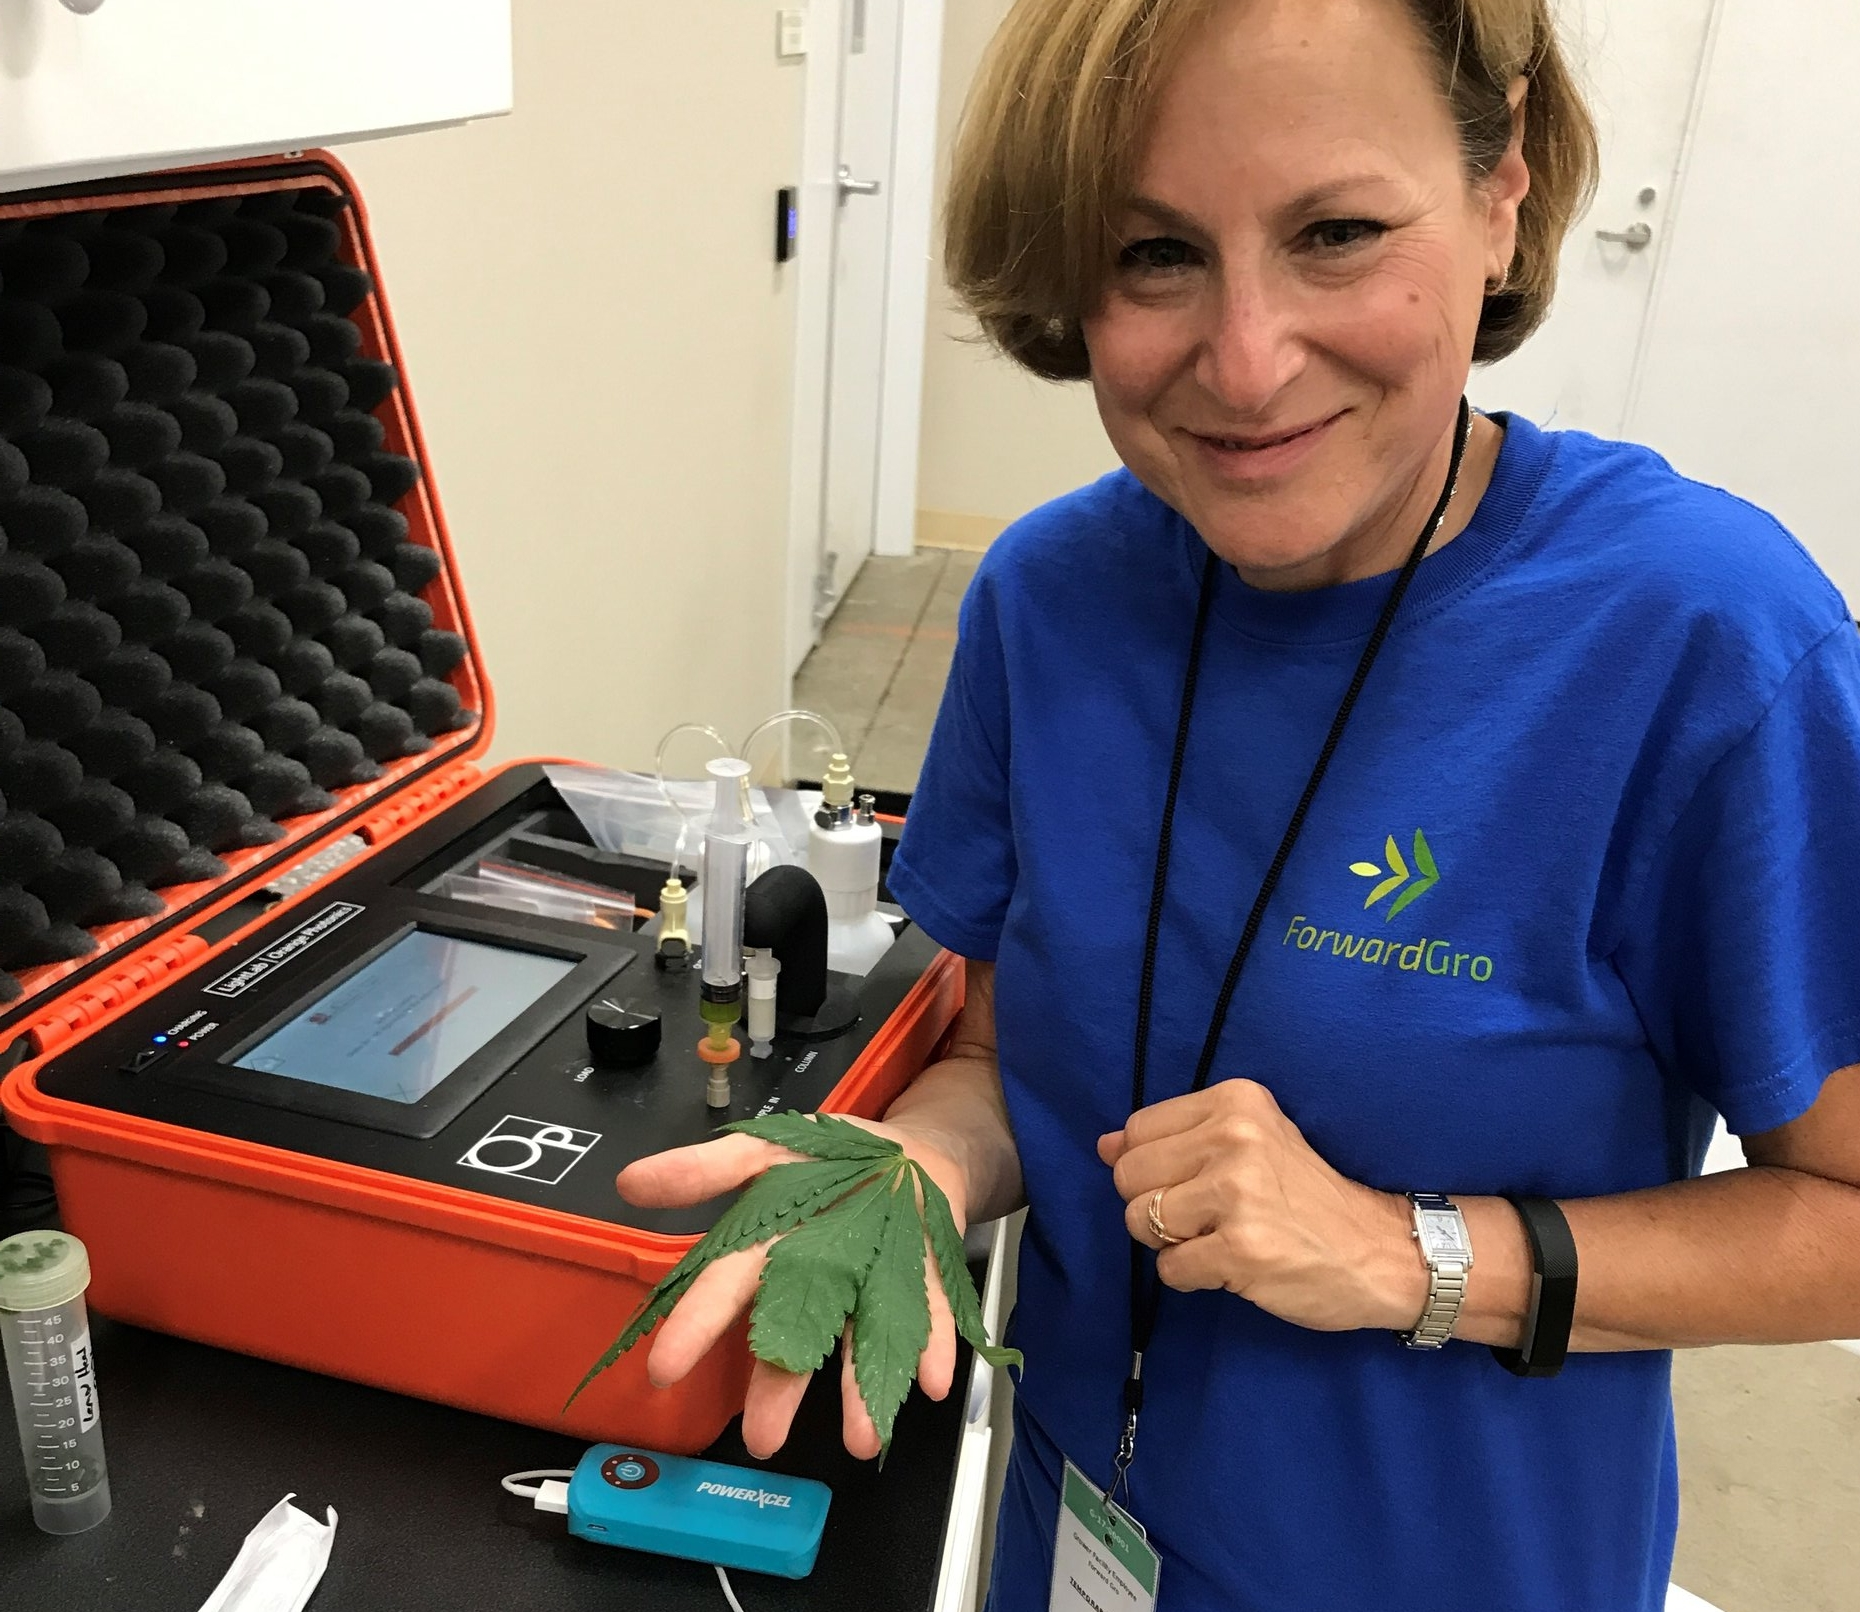 ForwardGro's Medical Director, Deb Kimless, MD, running a wet leaf sample on LightLab. Look for ForwardGro on social media to learn about their cutting-edge operation.